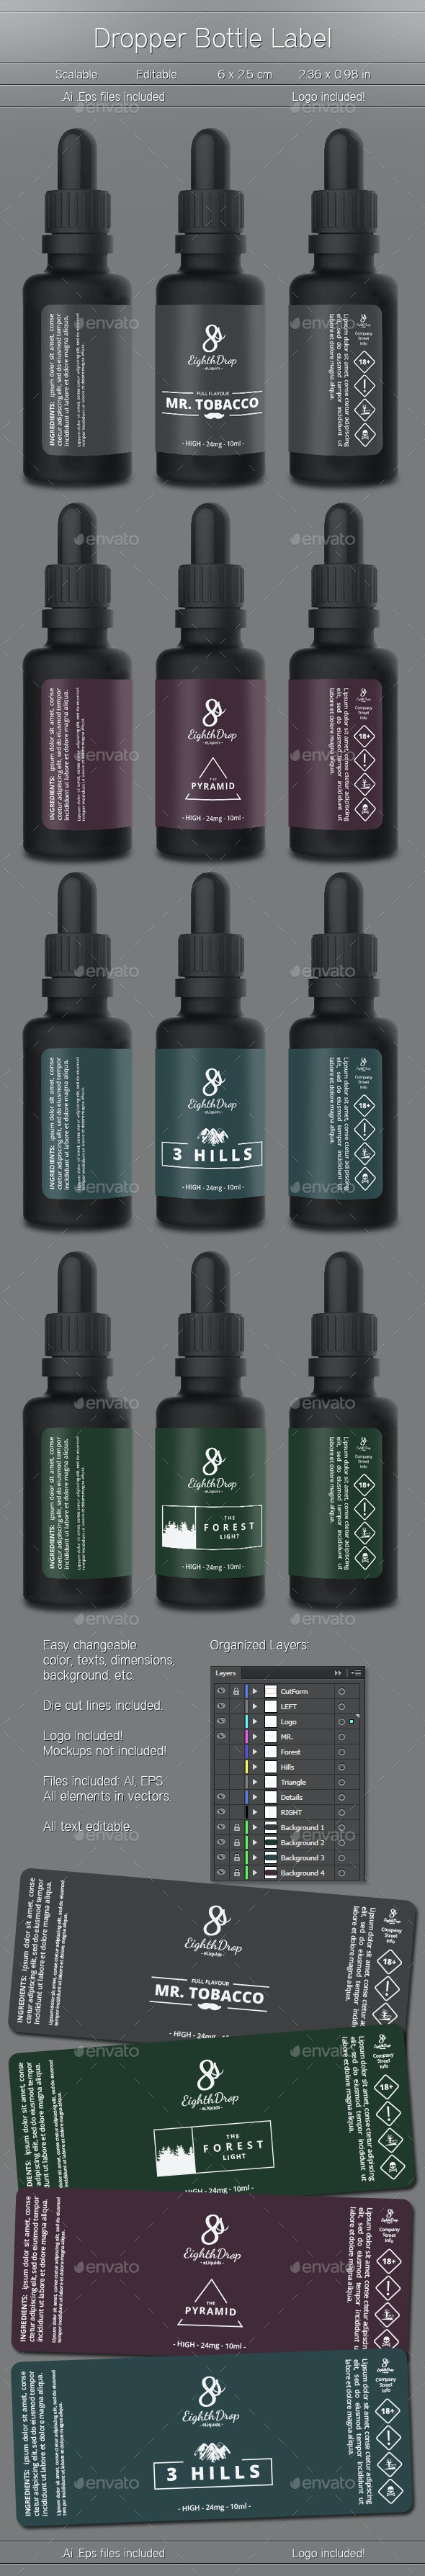 4 Label Design Templates - Packaging Print Templates